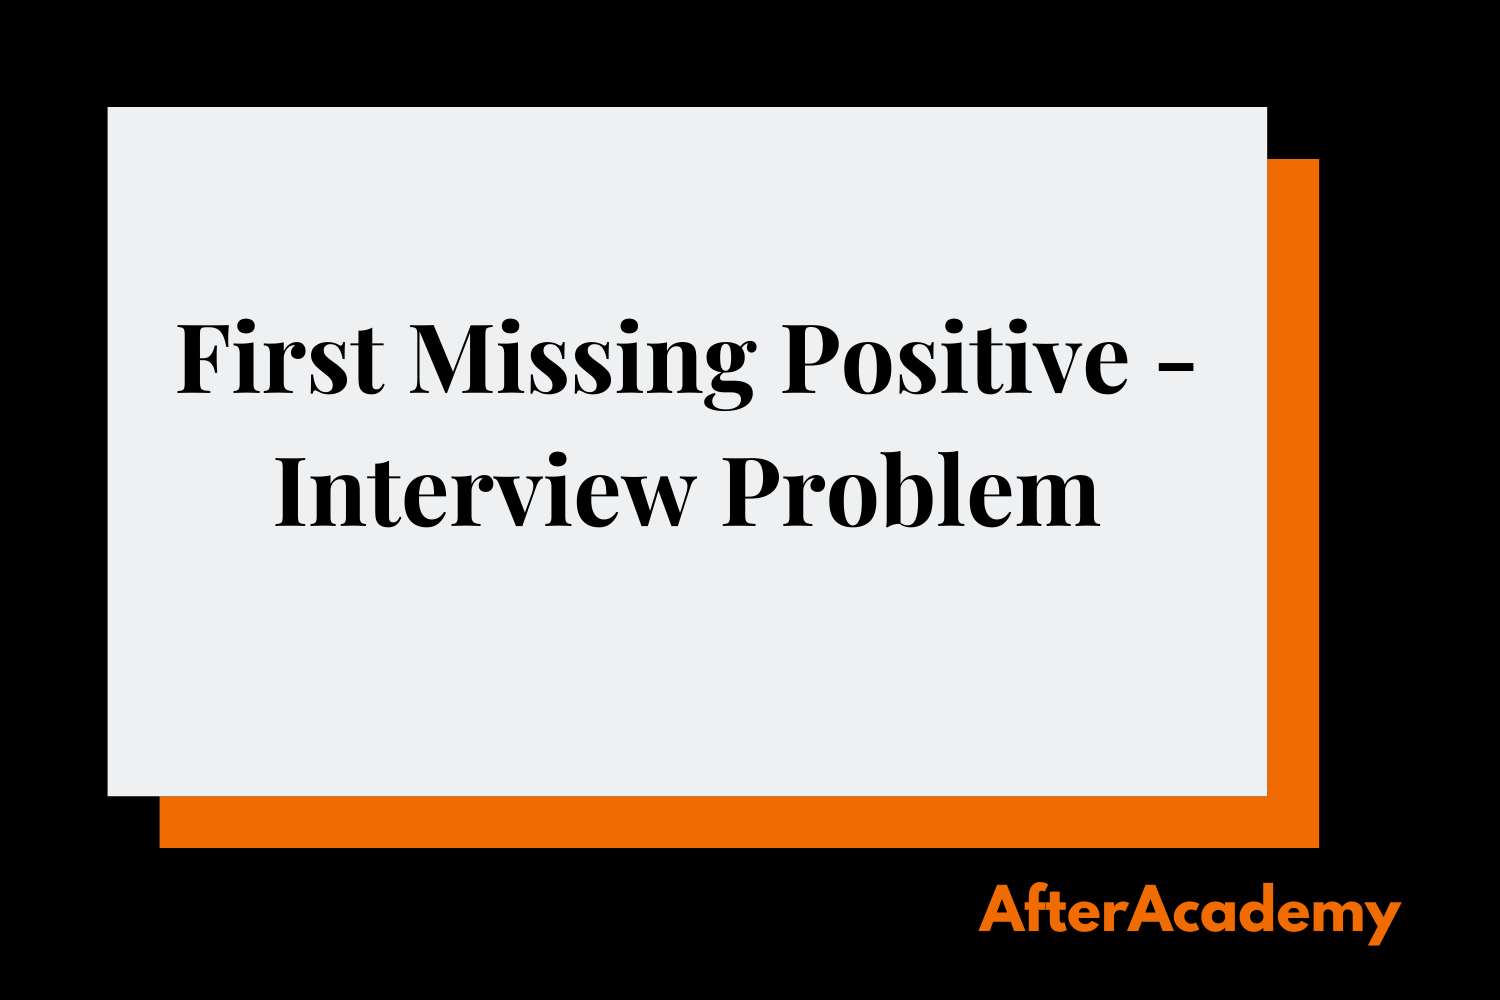 Find Missing Positive - Interview Problem